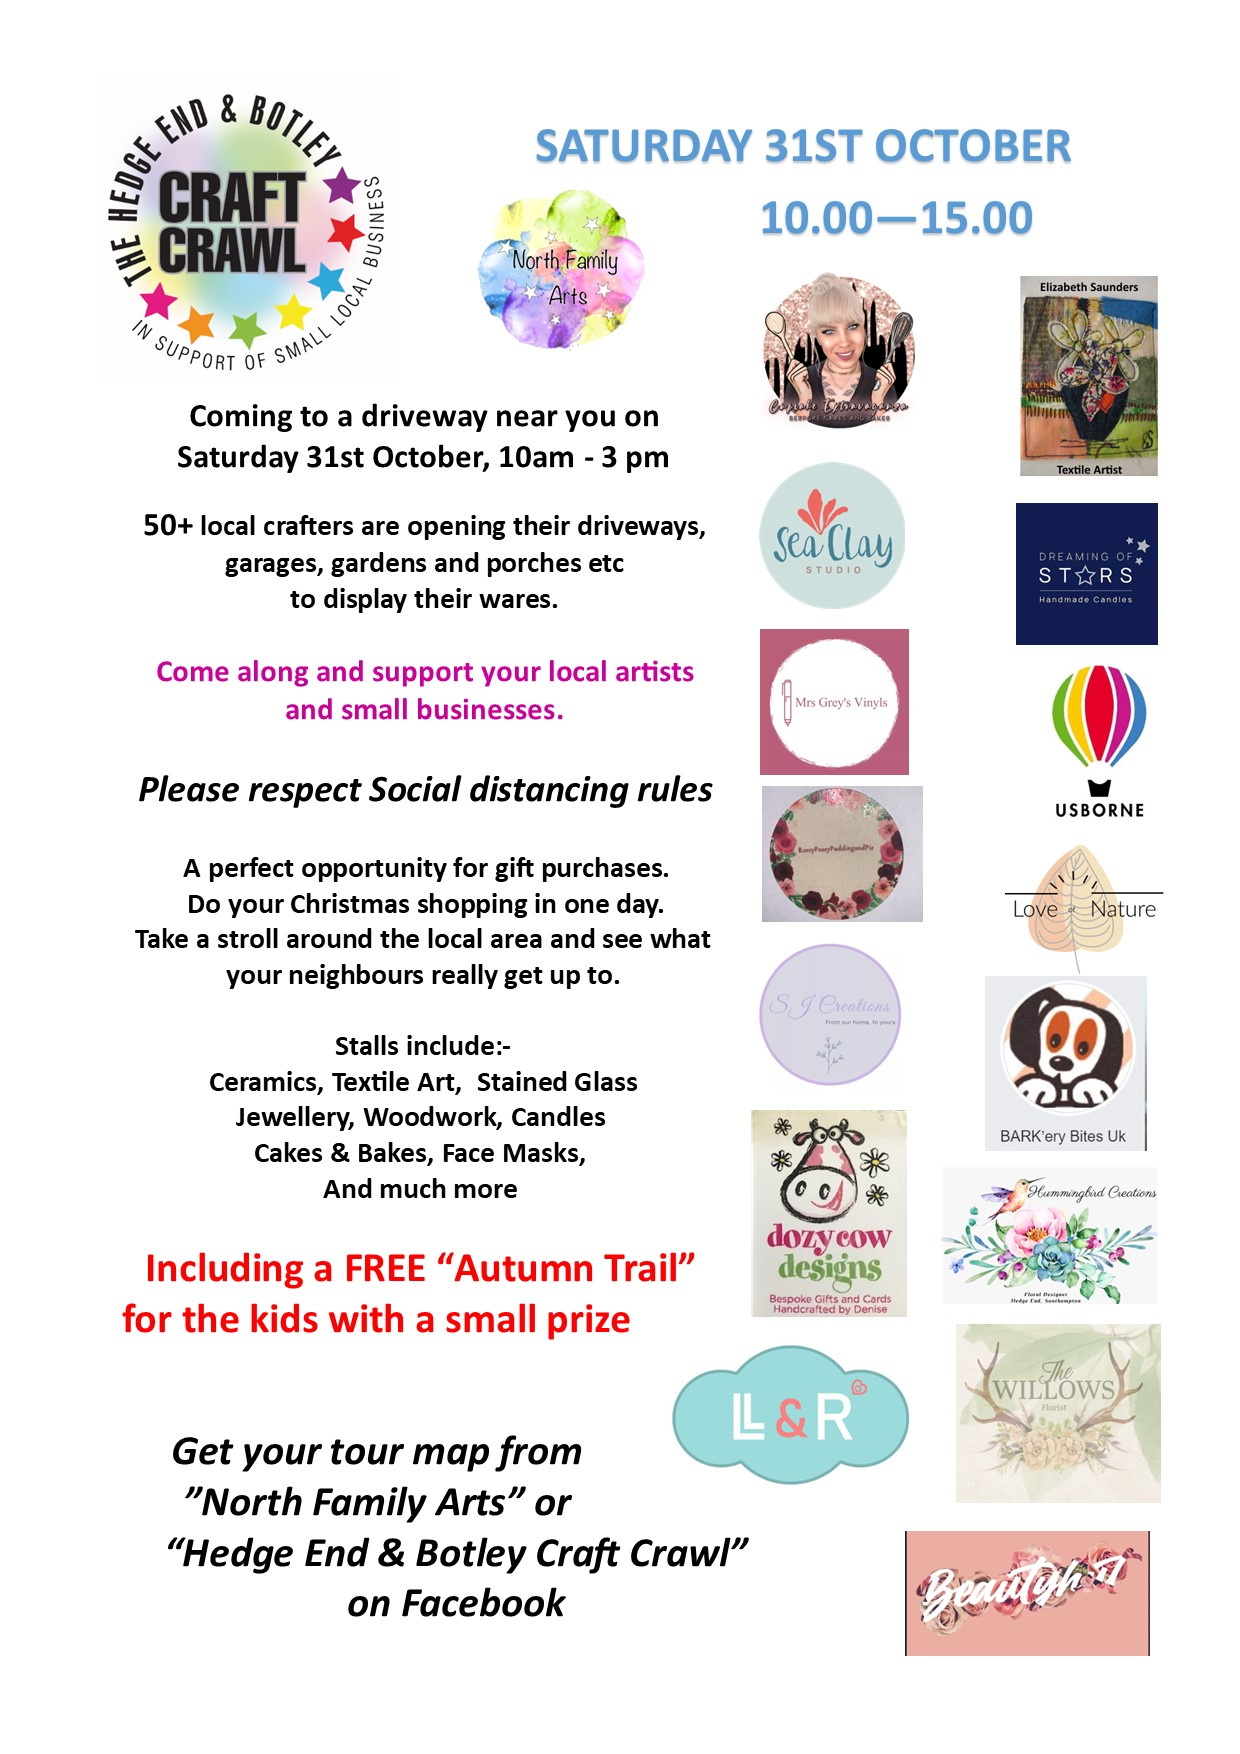 Hedge End and Botley Craft Crawl